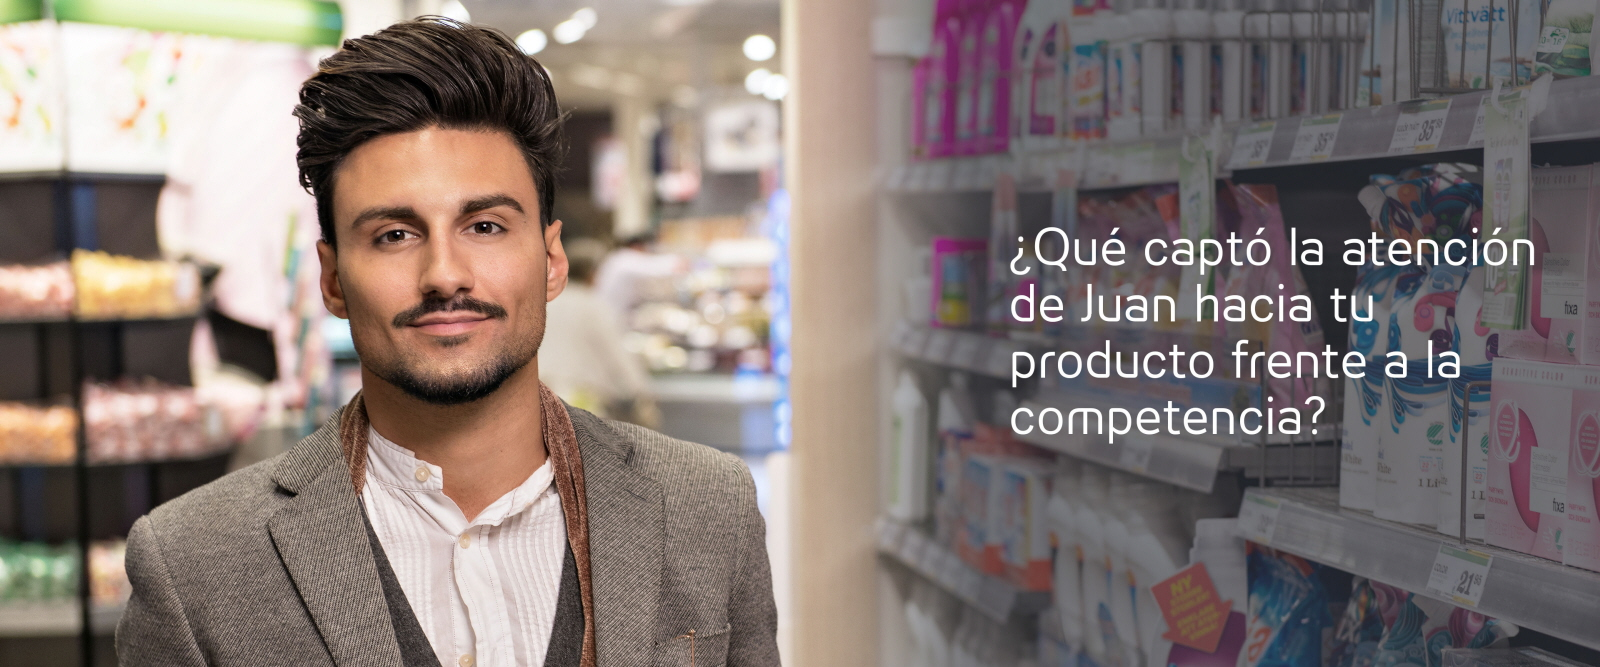 Consumer Journey Page Image Banner